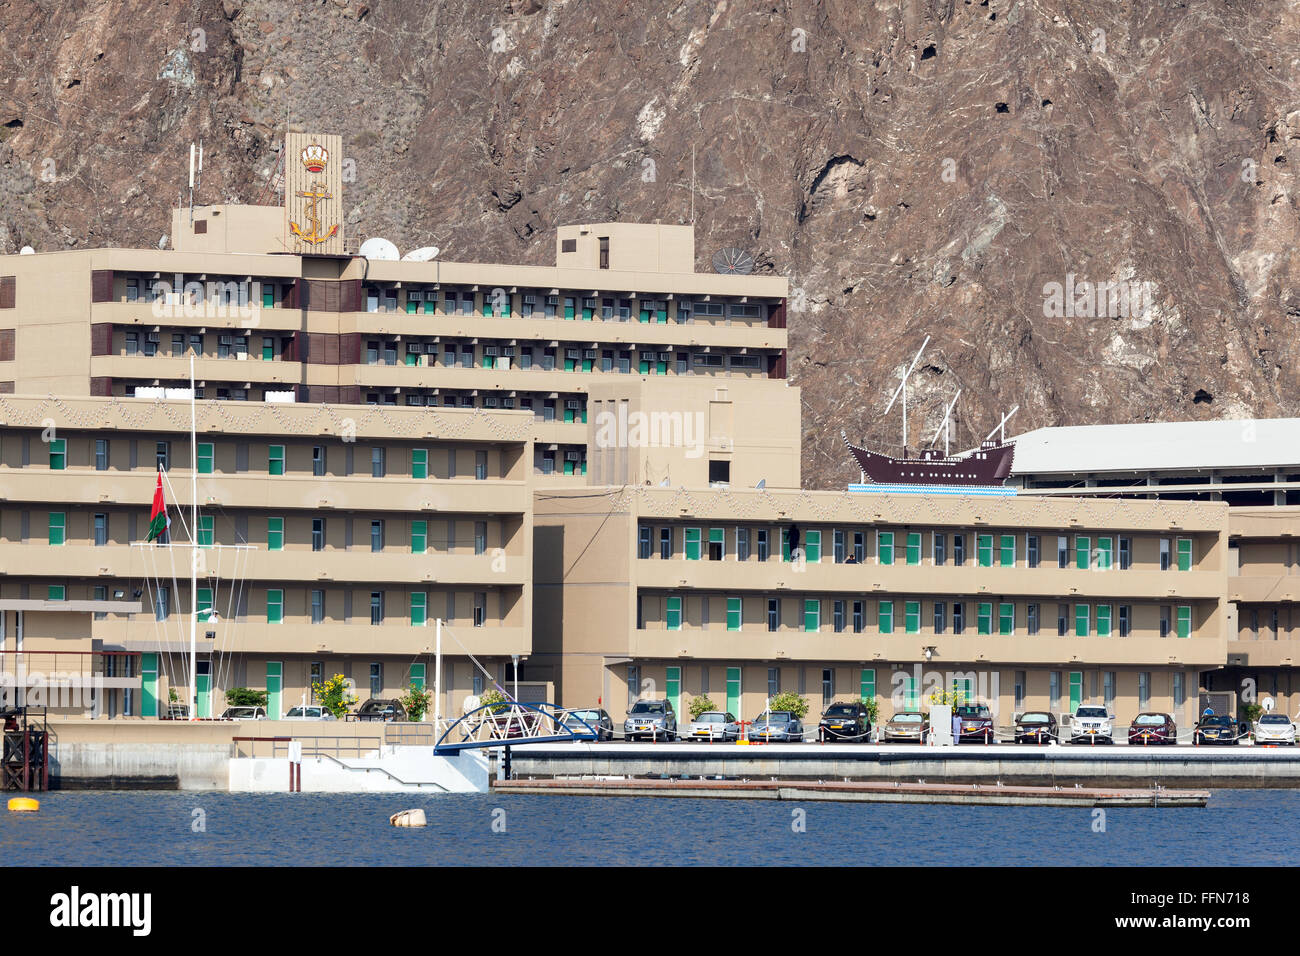 Naval Base in Muscat, Oman - Stock Image